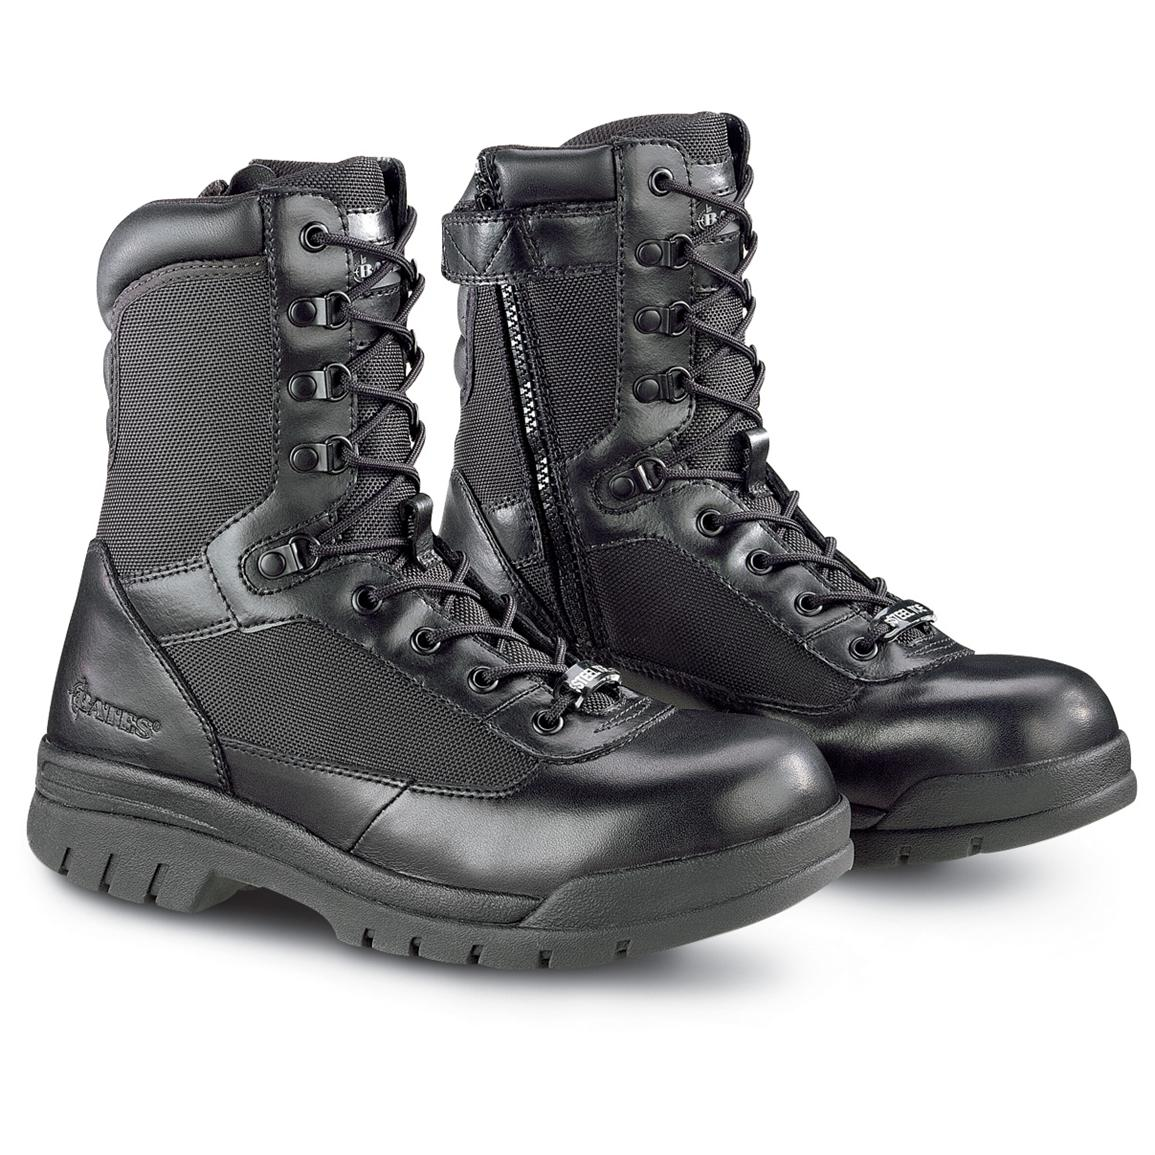 Steel Toe Combat Boots sAYvuEDE